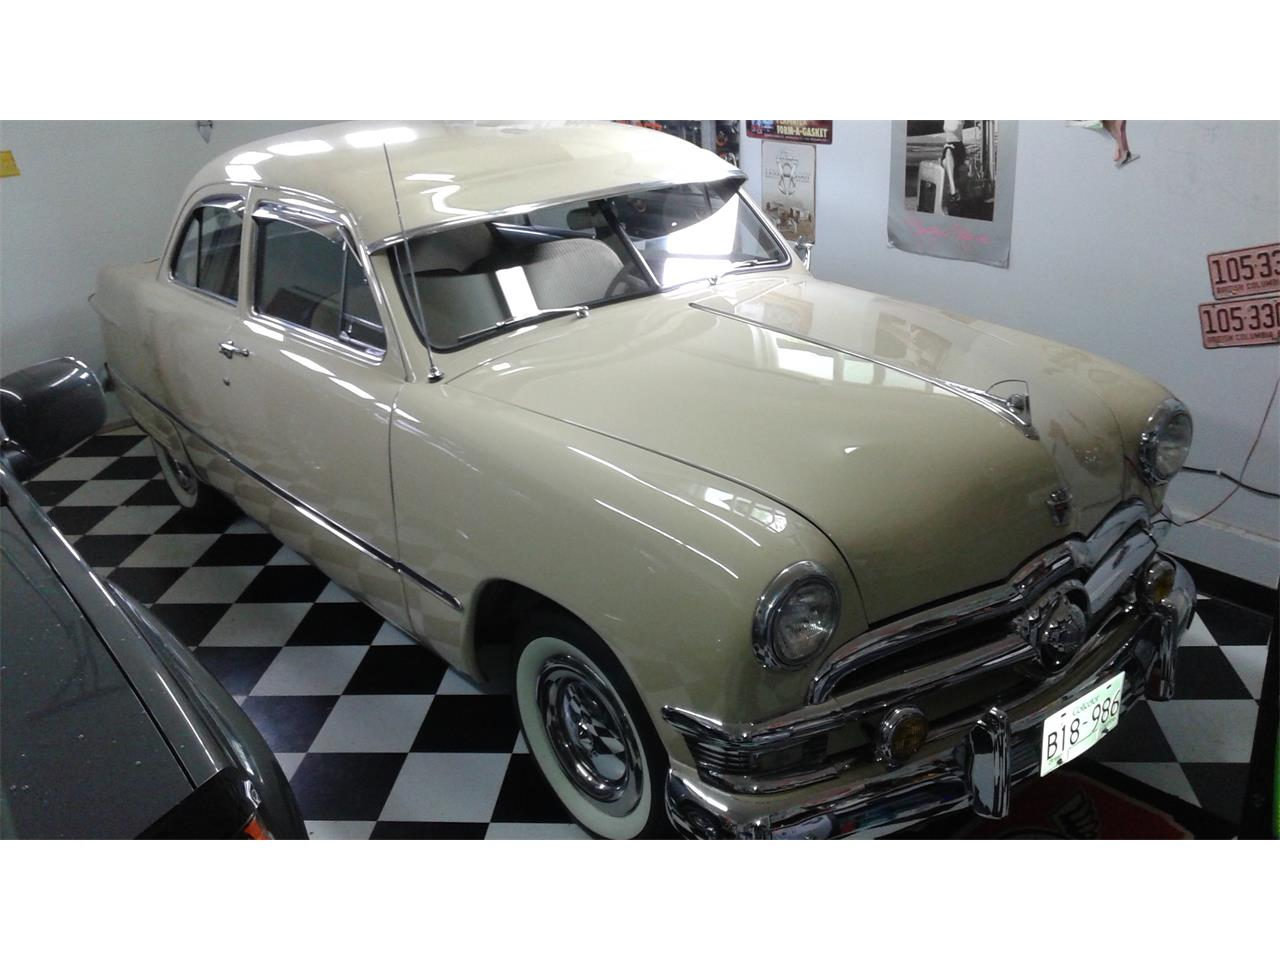 Large Picture of Classic '50 Ford 2-Dr Sedan located in Keremeos British Columbia - $28,000.00 Offered by a Private Seller - QW1P